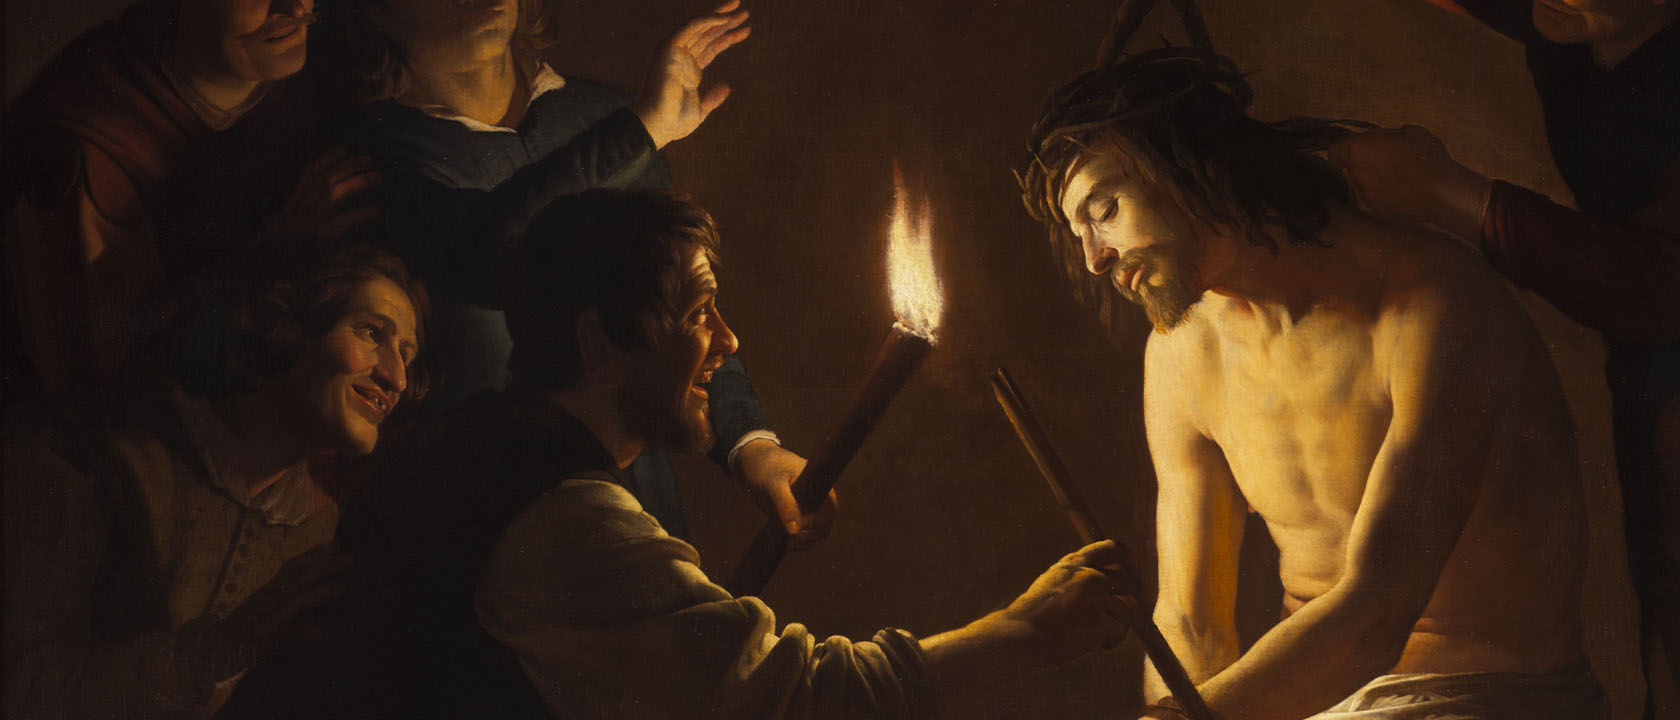 Gerard-van-Honthorst-De-bespotting-van-Christus-ca.1617-Los-Angeles-County-Museum-of-Art-slide-3